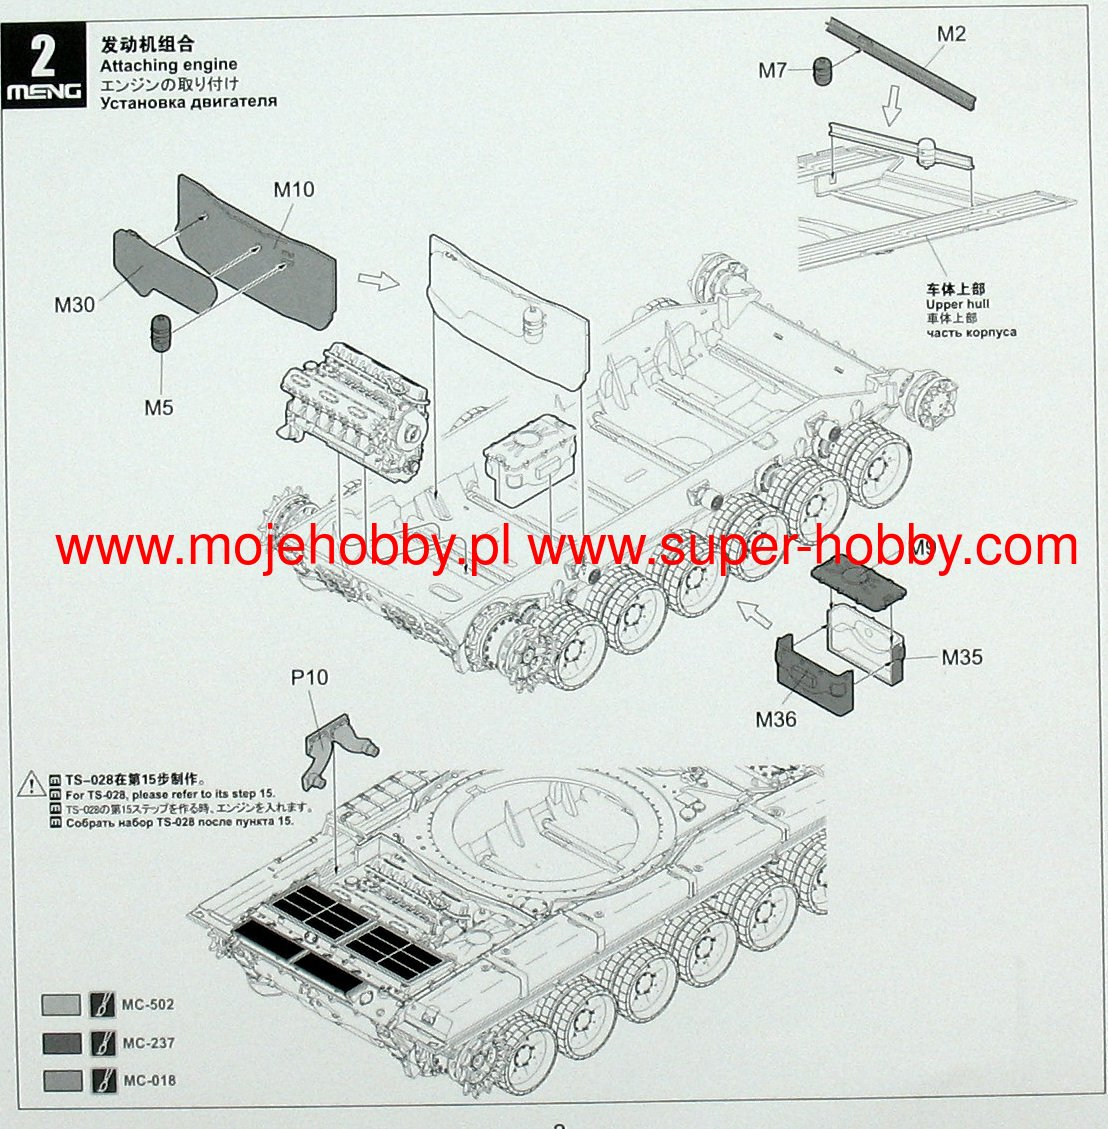 Russian V 84 Engine For Ts 014 028 And All Other T 72 Models M30 Diagram 2 Mngsps28 3